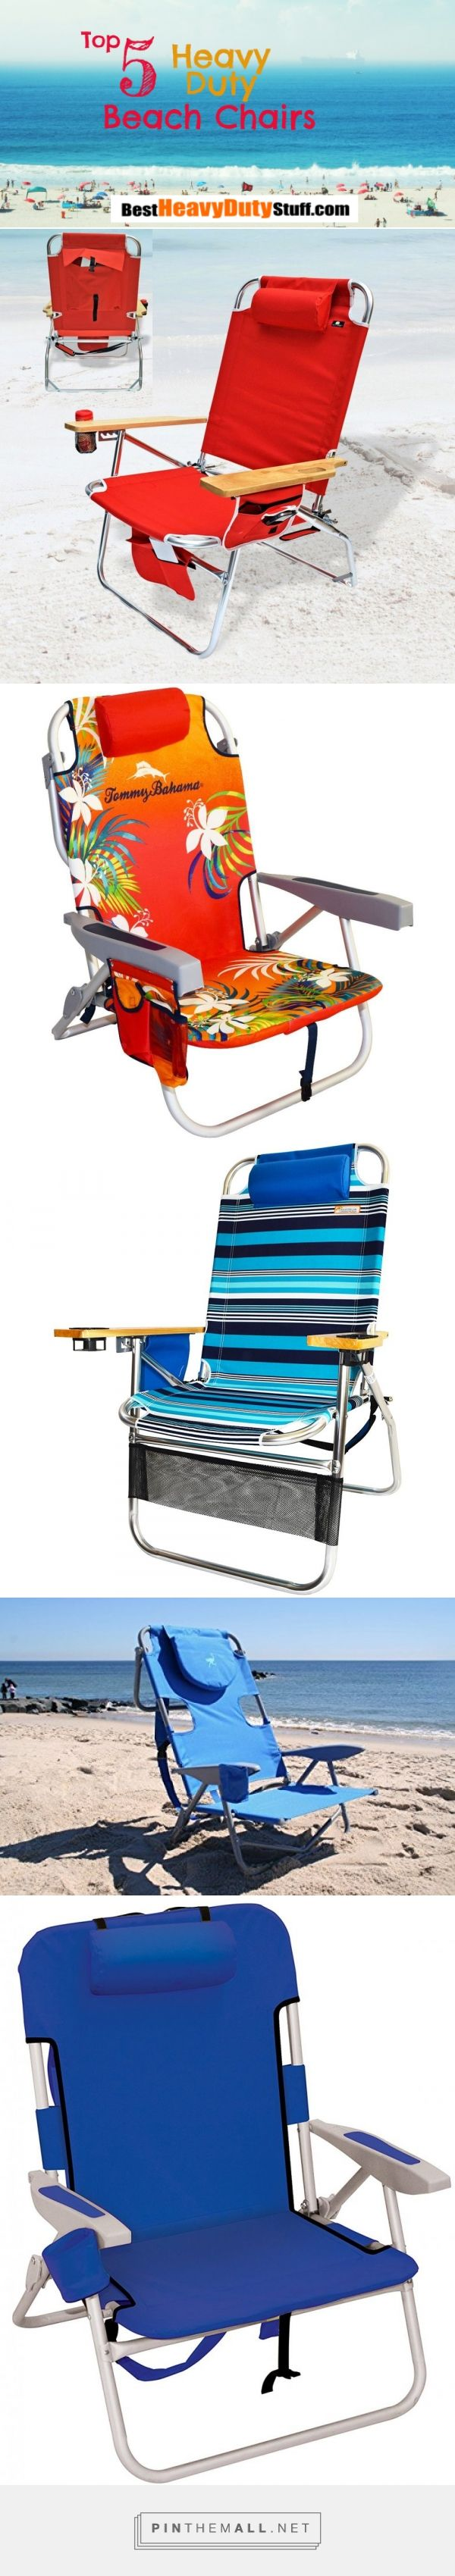 5 Best Heavy Duty Beach Chairs Comfortable For The Big Person | Heavy Duty  Beach Chairs, Beach Chairs And Online Discount